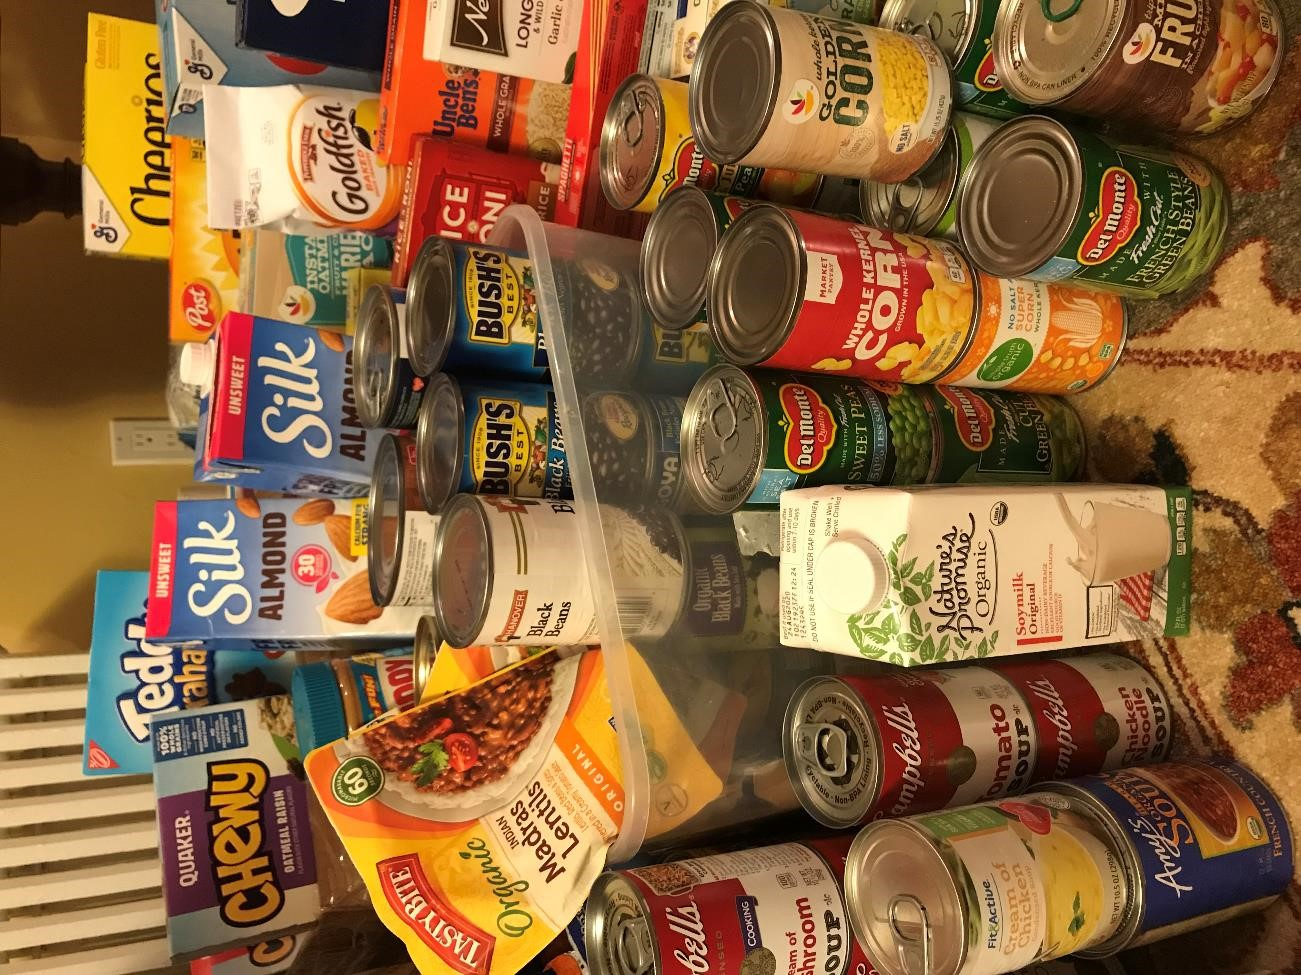 A collection of non-perishable food items